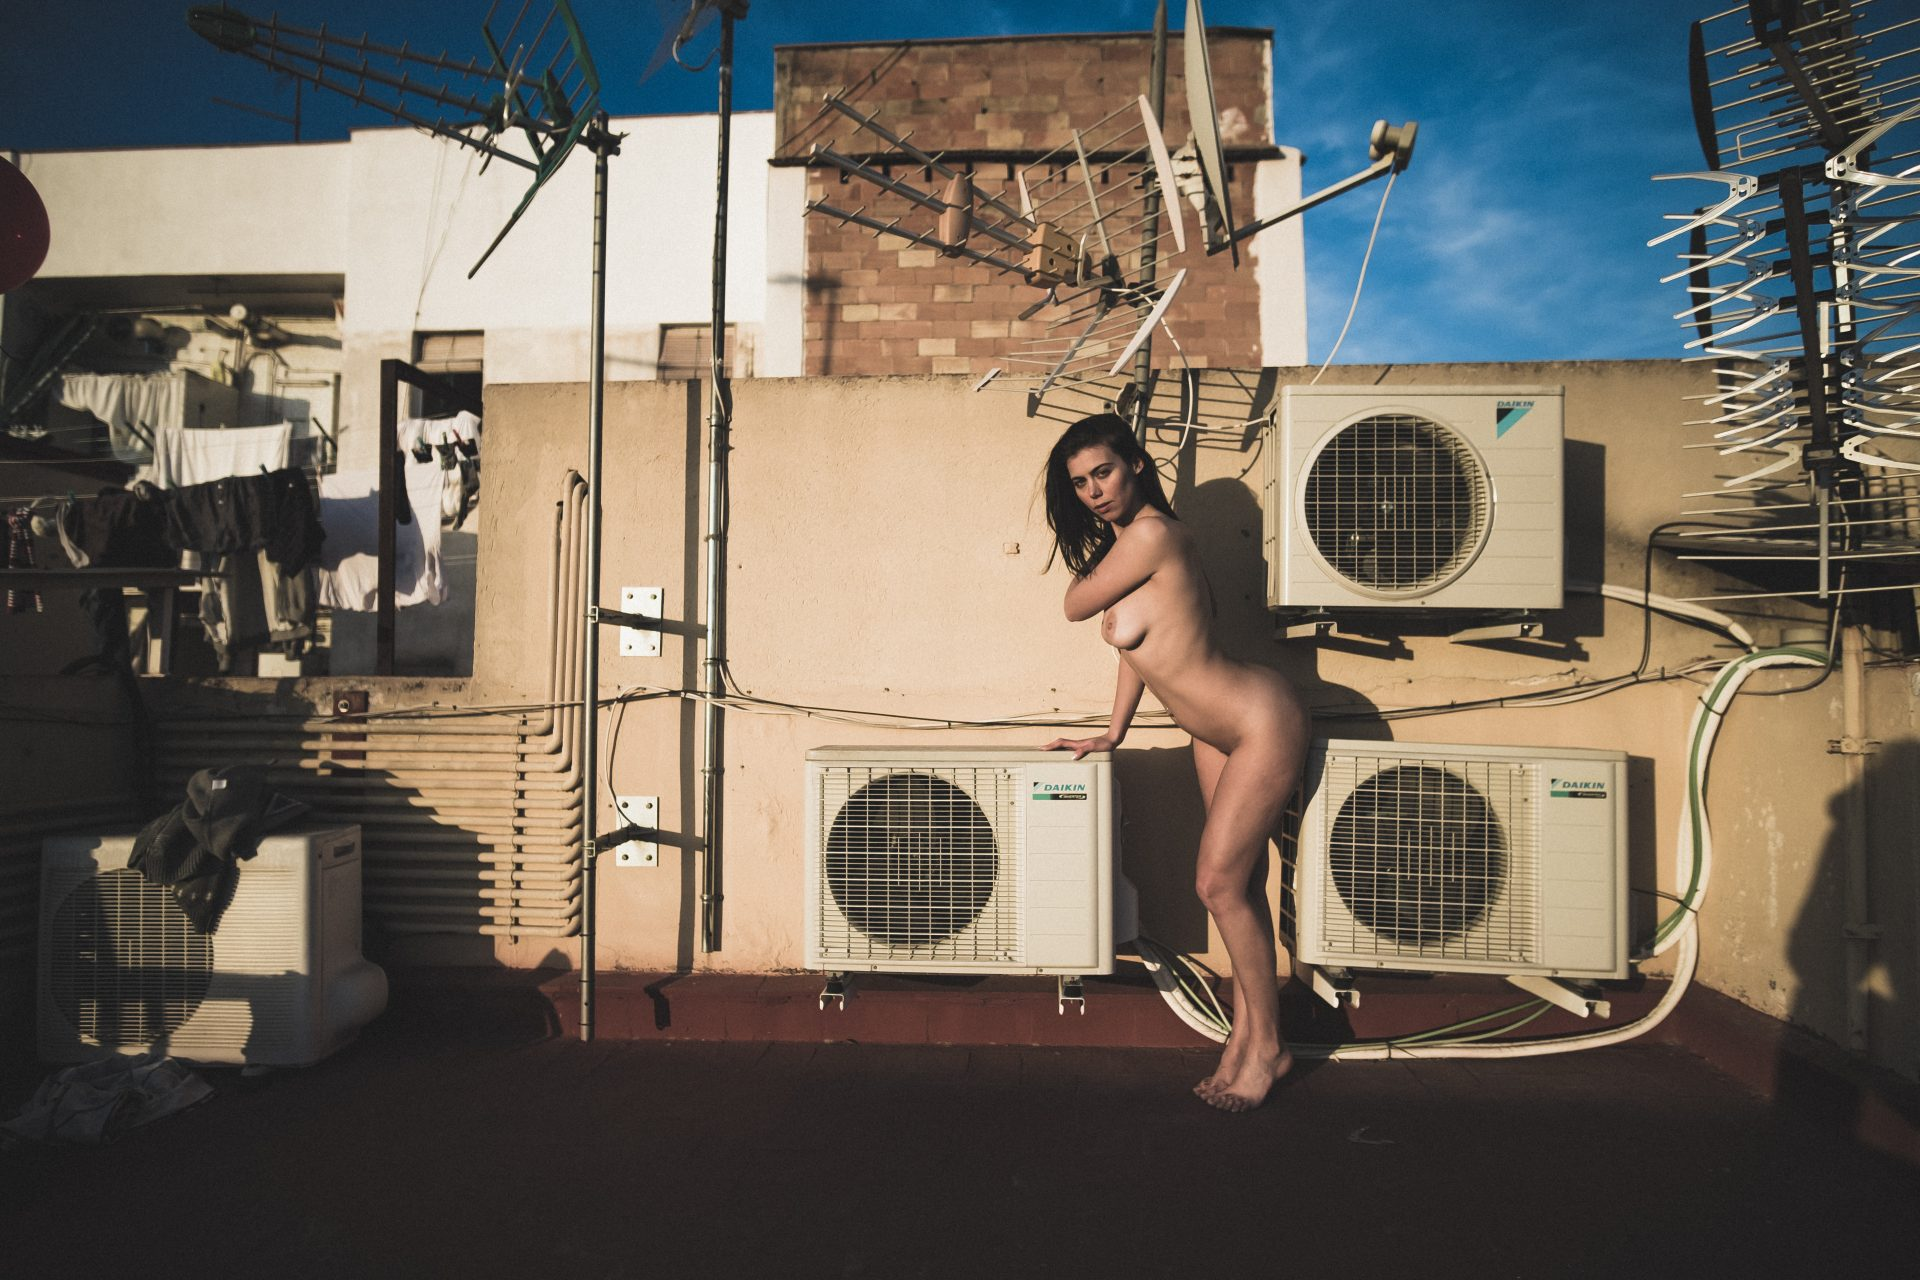 Lemonbahaya natural amateur model posing nude on a rooftop surrounded by AC and antenas photo by Jo Kassis